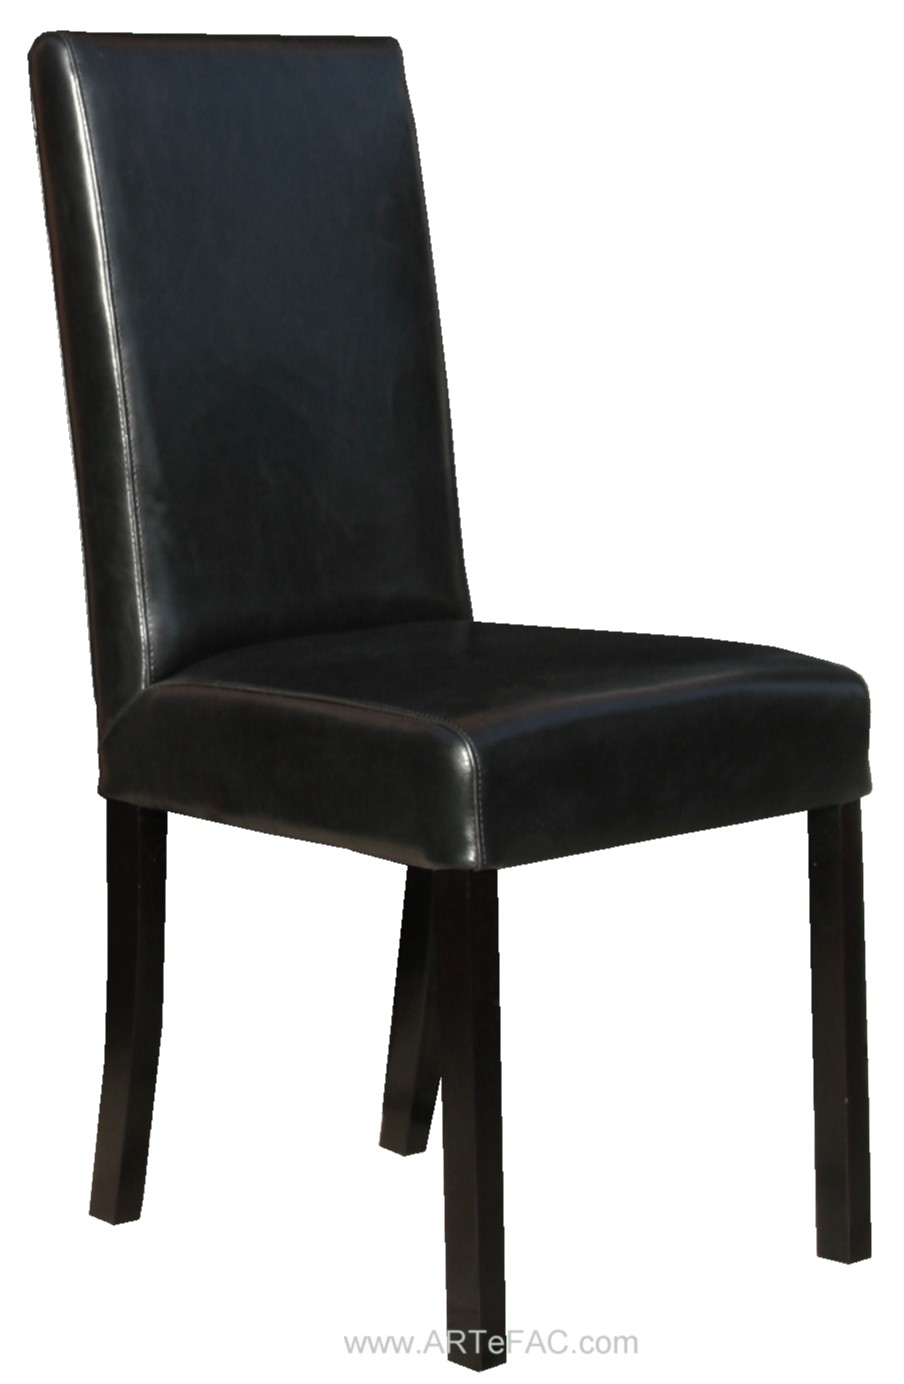 Luxury black dining chairs | Black Leather Dining Room Chairs and Leather Bar black leather dining room chairs